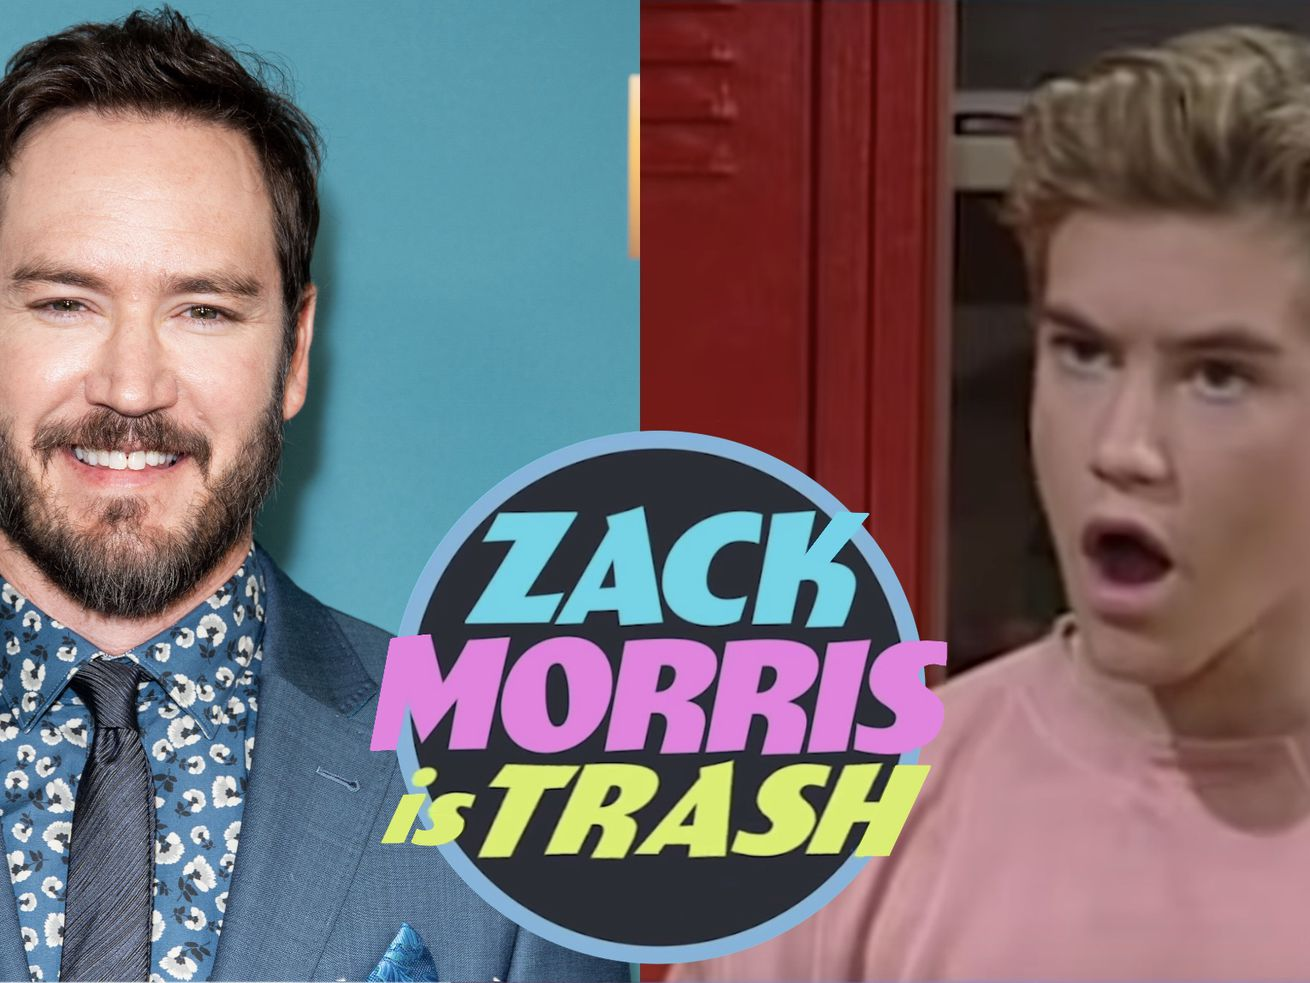 CONFIRMED: Zack Morris Knows He's Trash